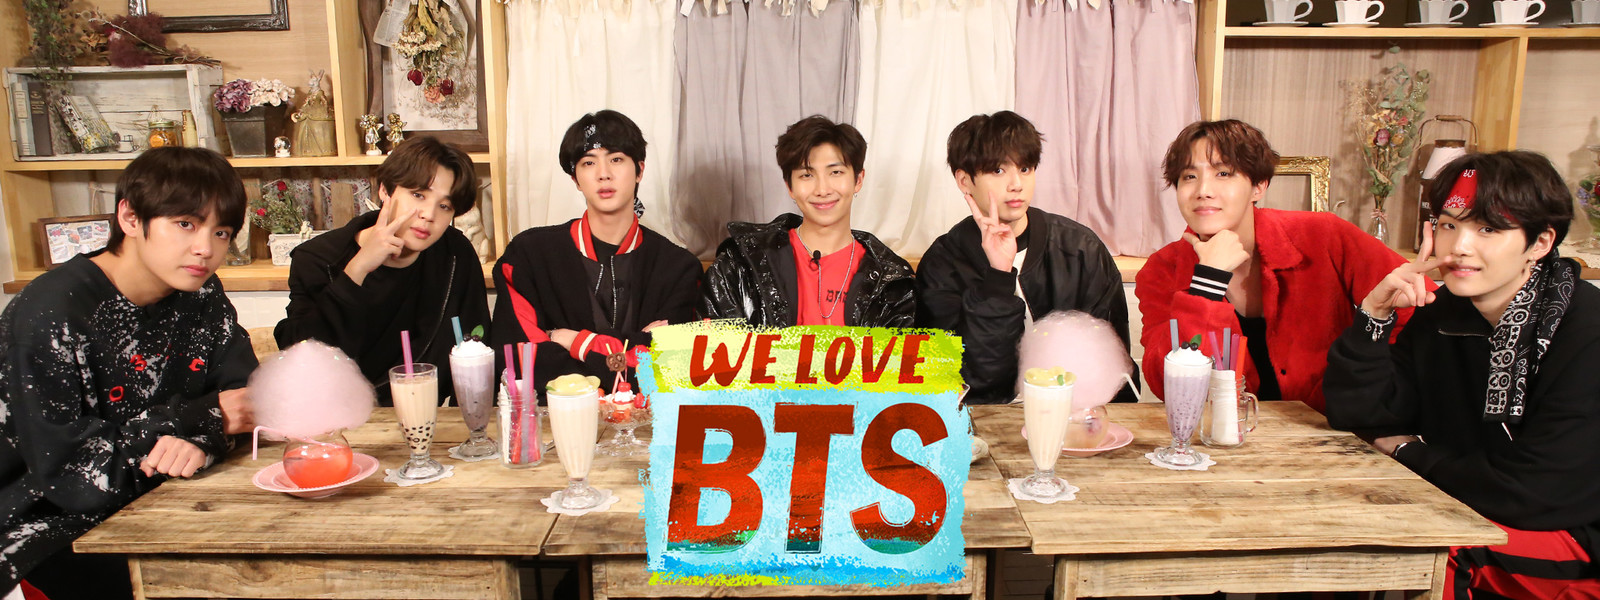 w0ge 42029127275 0c695d0edb o - [Video] (We Love BTS ) 'Sweets Party in Harajuku' [180705]